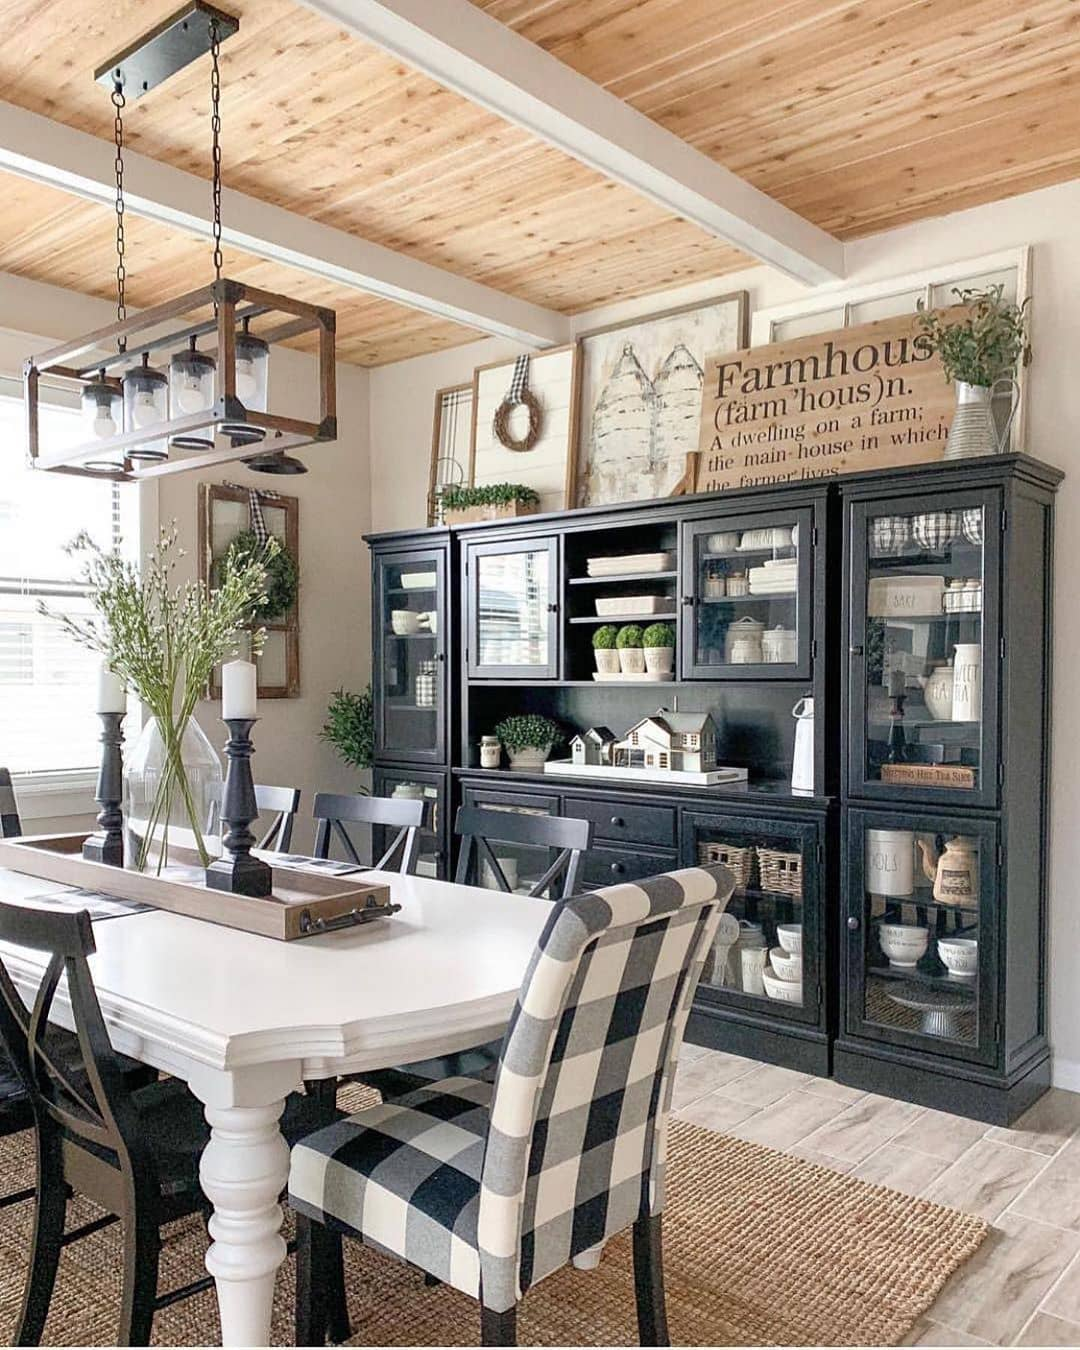 20 Modern Farmhouse Decor Ideas in 2020 - Do It Before Me